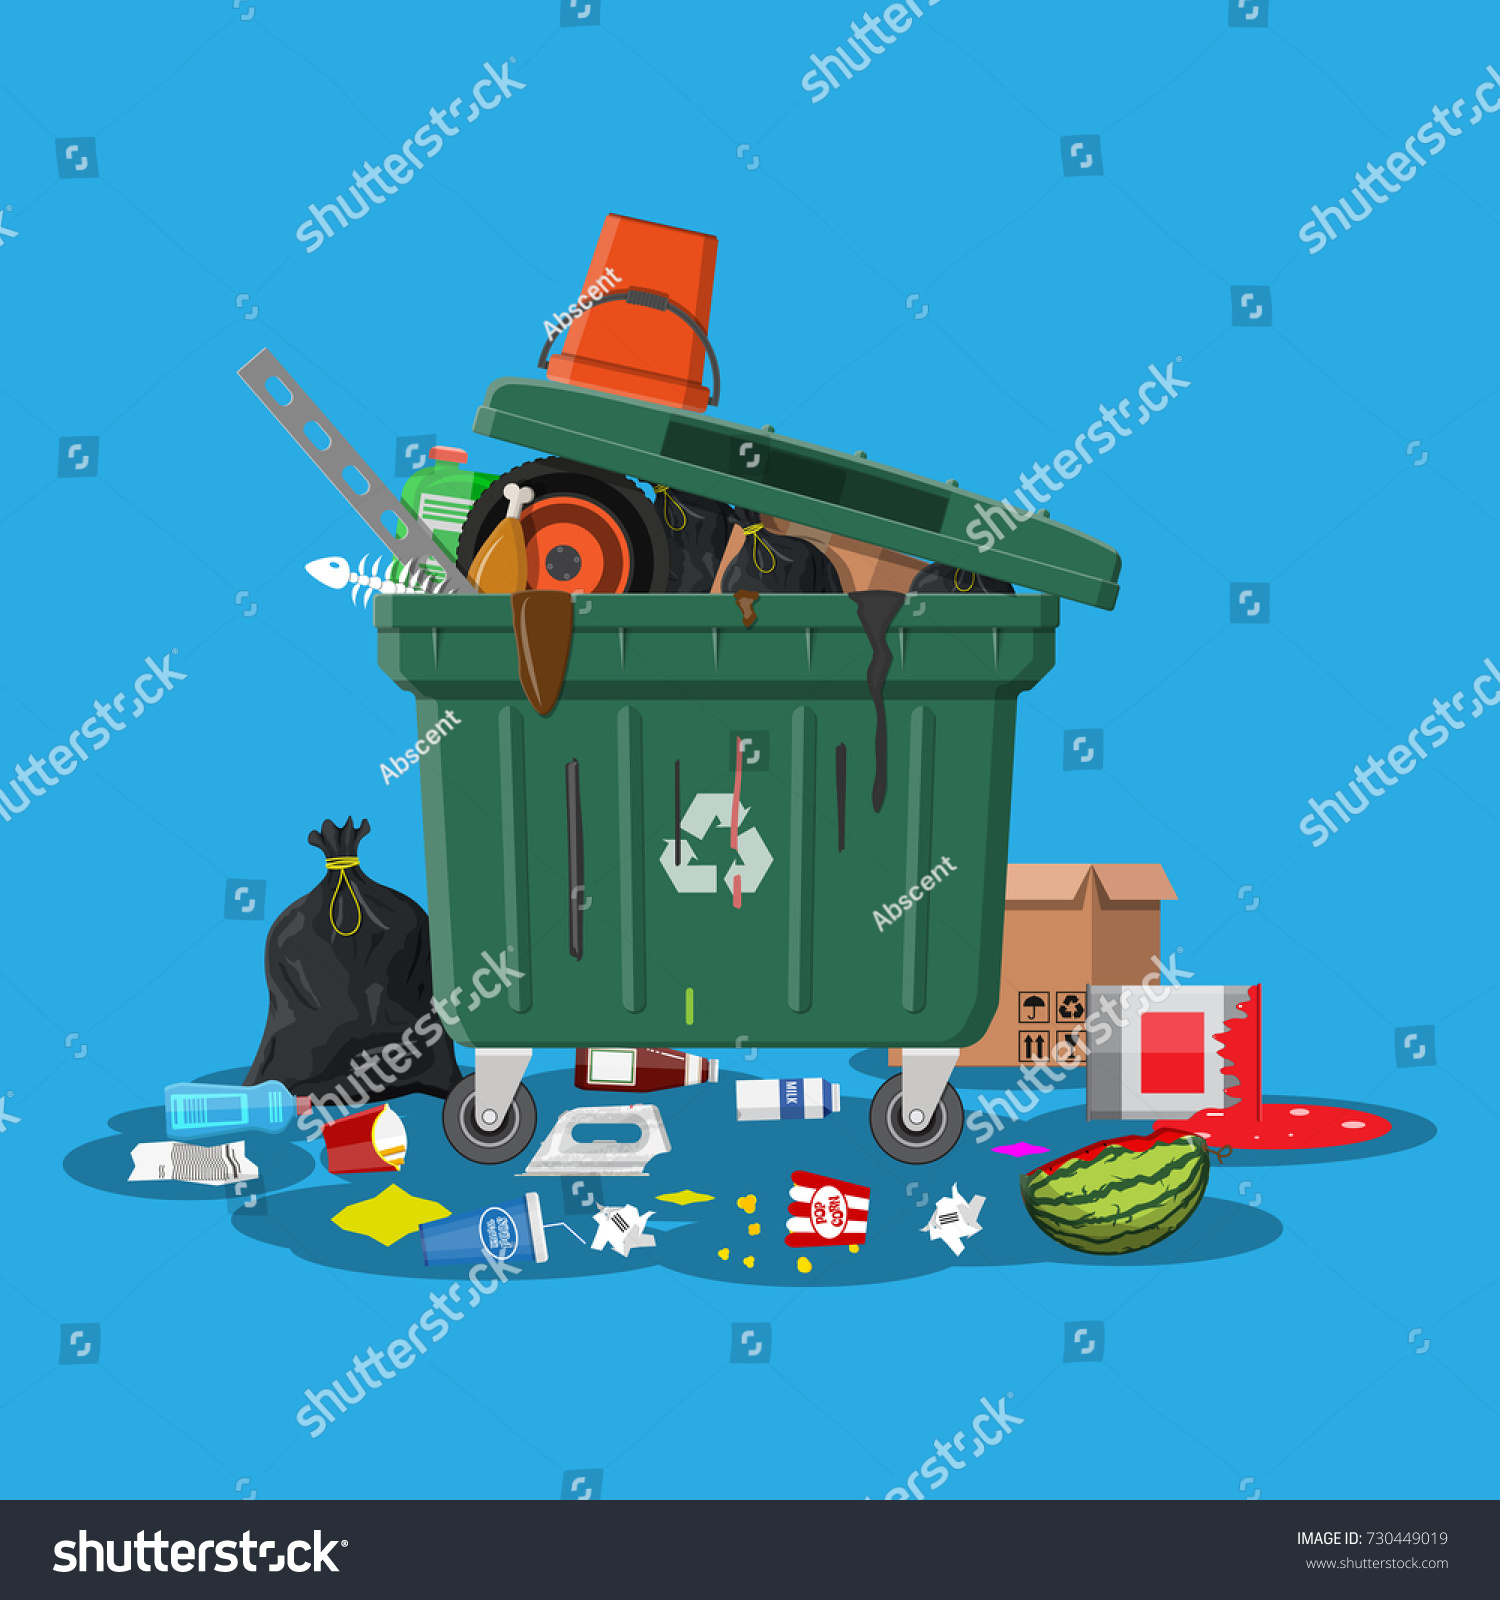 Plastic Garbage Bin Full Trash Overflowing Stockillustration ...